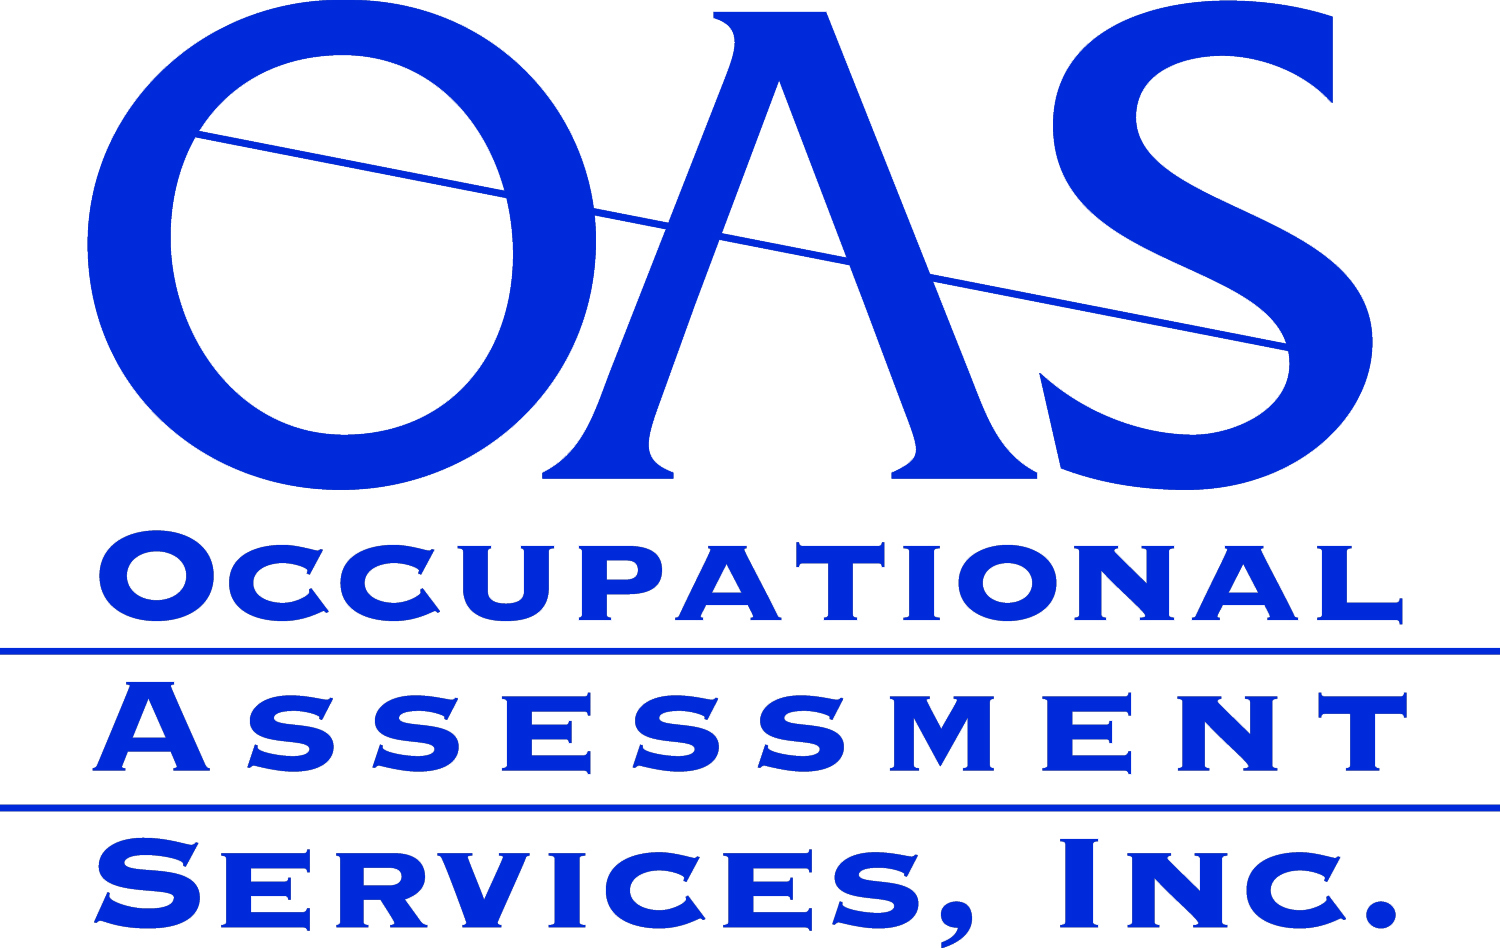 Occupational Assessment Services